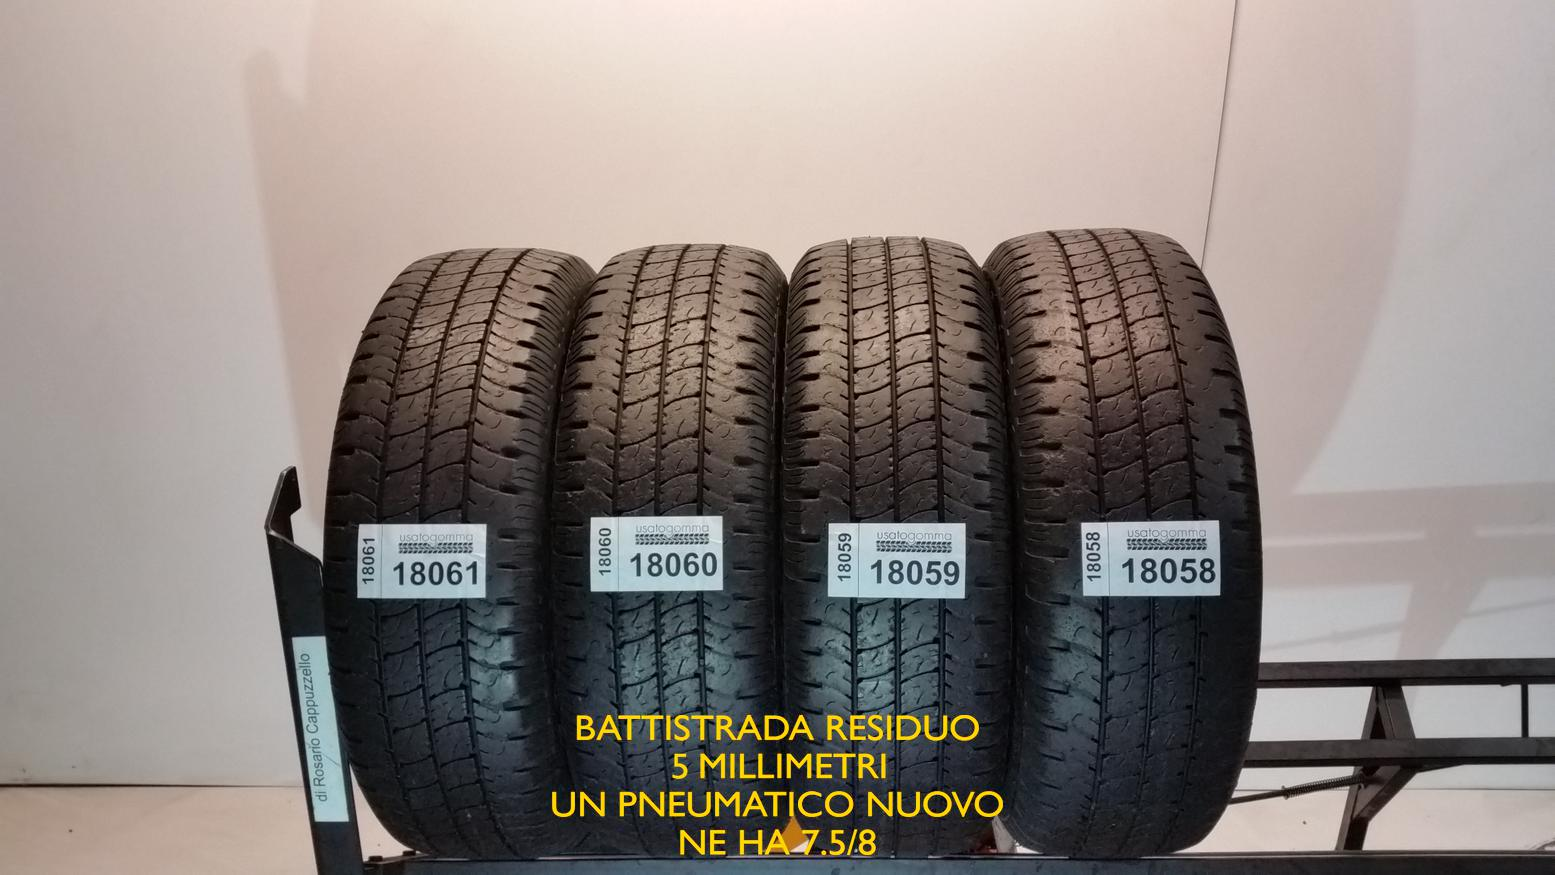 Goodyear 195/60 R16 99 H  usato gomma